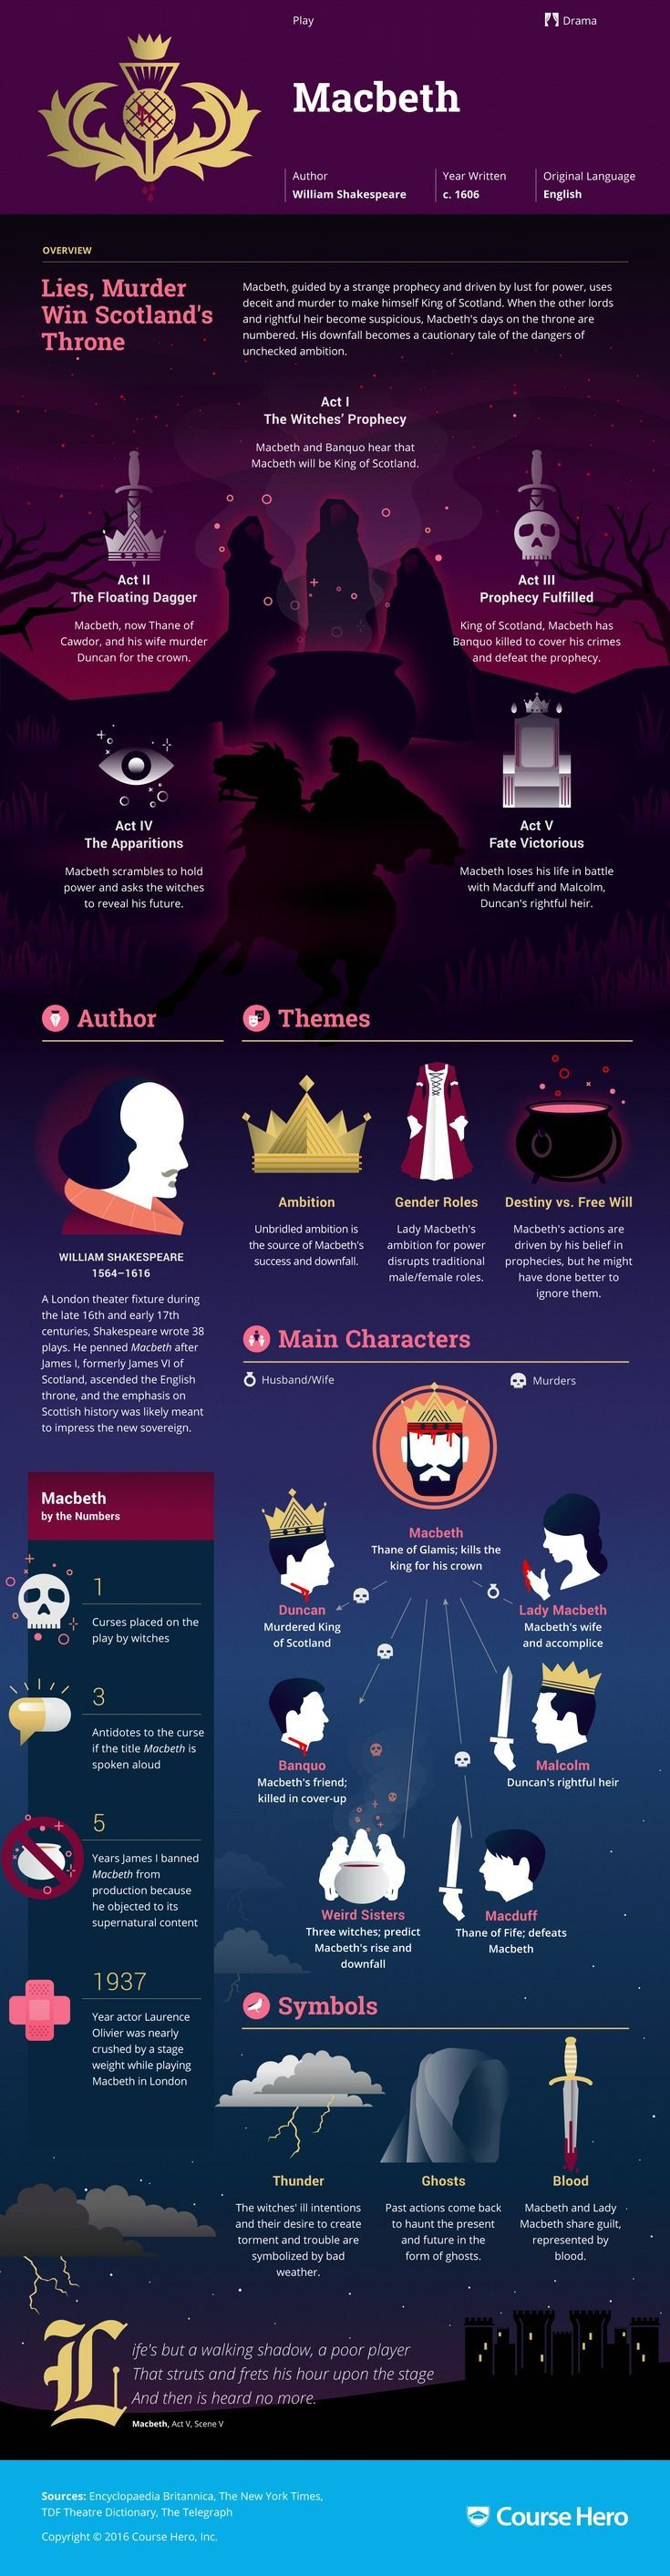 17 best ideas about macbeth summary macbeth themes this coursehero infographic on macbeth is both visually stunning and informative